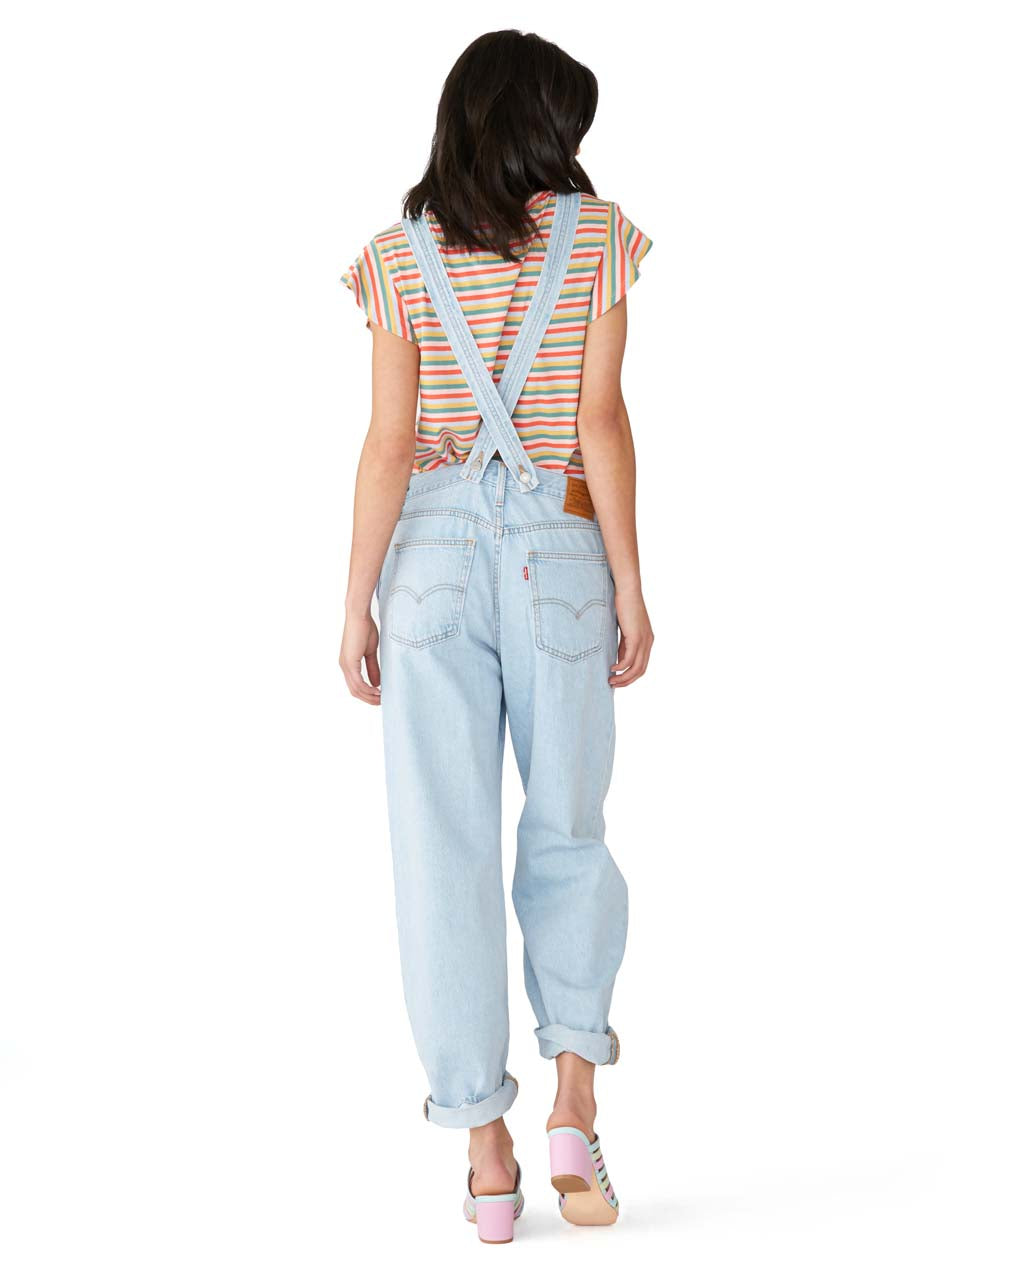 Adjustable straps crisscross in the back.